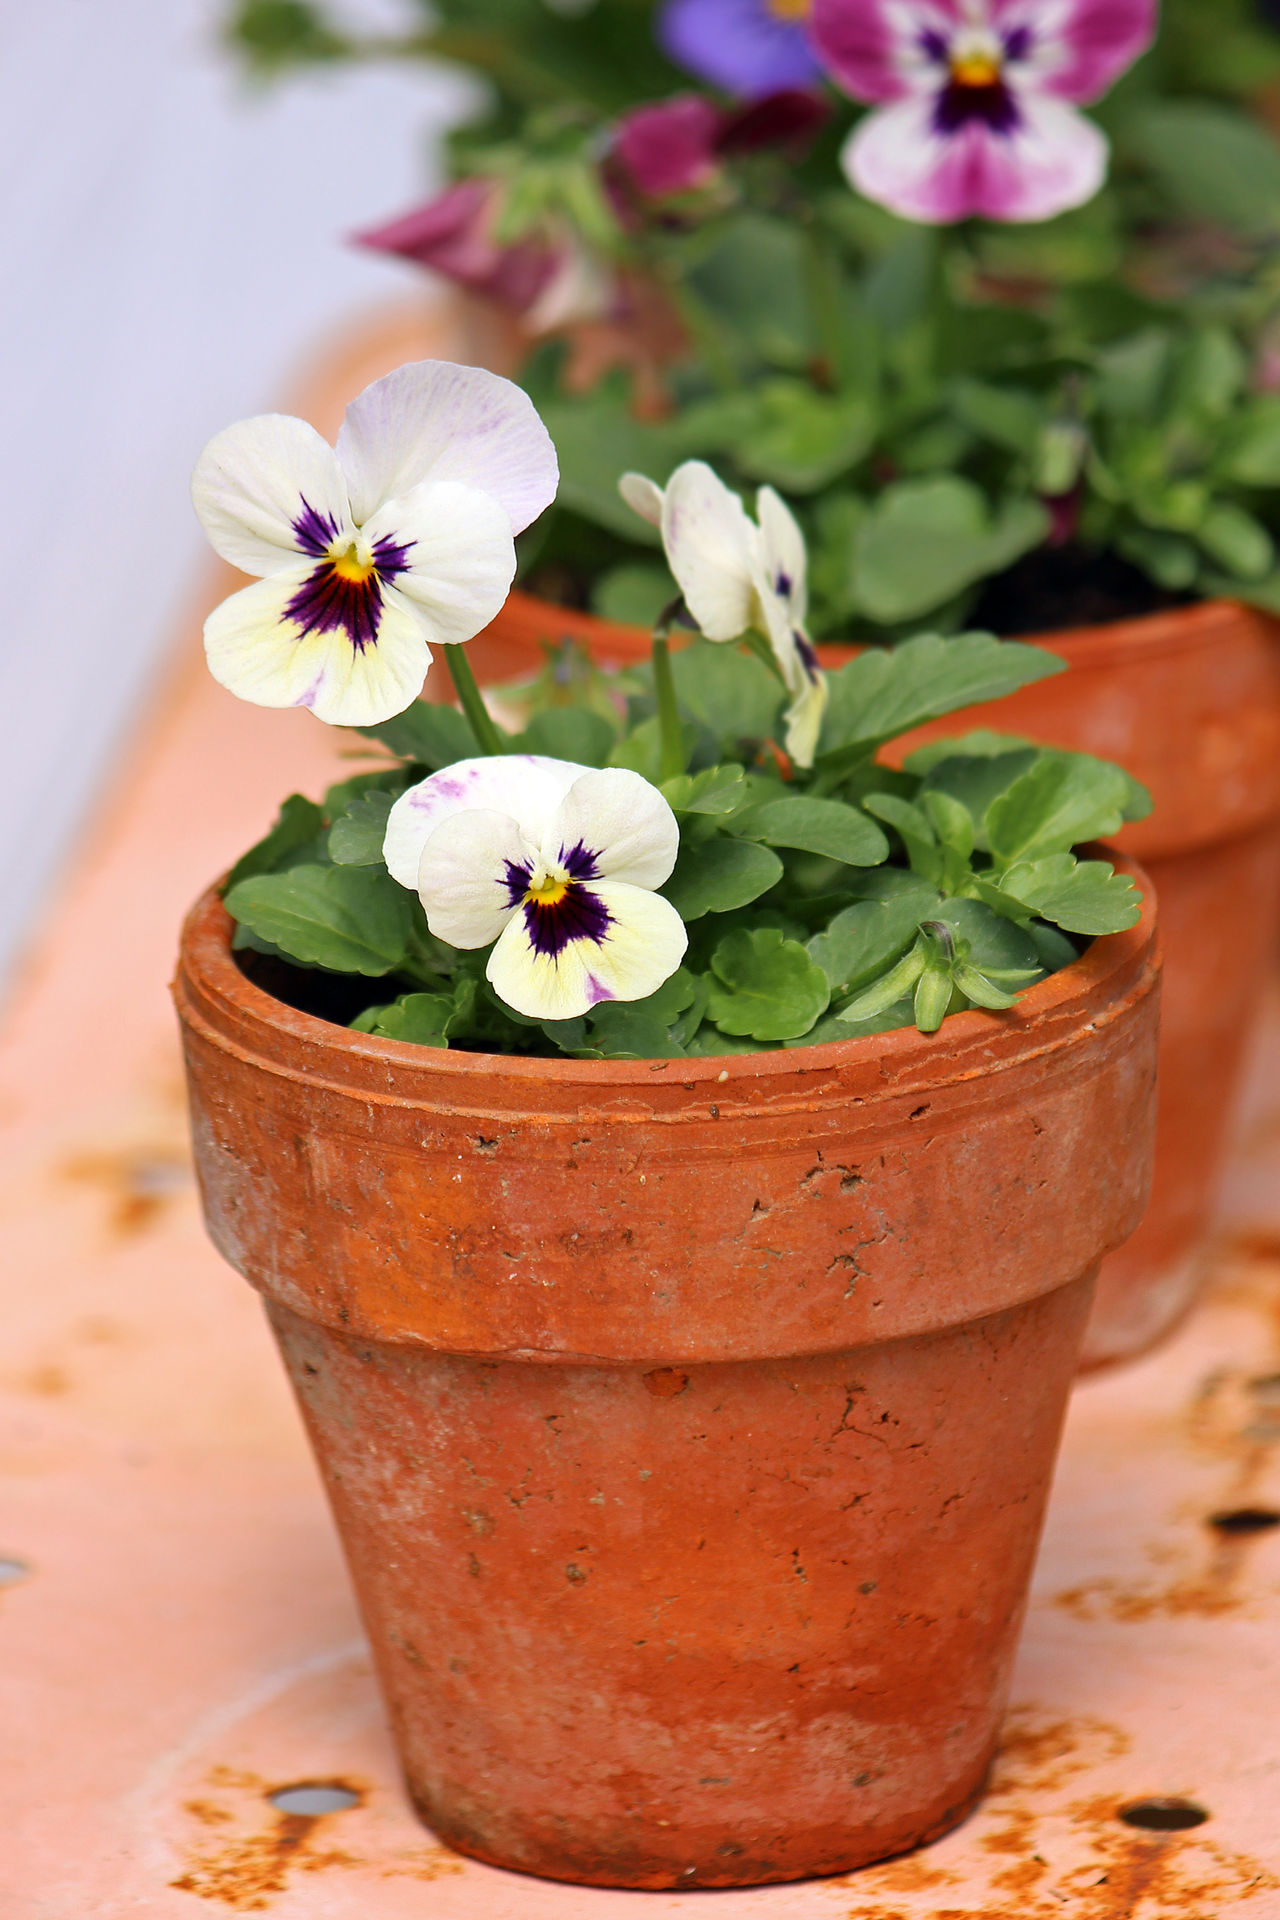 Pansy pots Background Beauty In Nature Blooms Container Gardening Flower Flower Head Fragility Freshness Growth Nature Pansy Flowers Potted Plant Potted Plants Selective Focus Spring Summer Terra Cotta Pots Violet